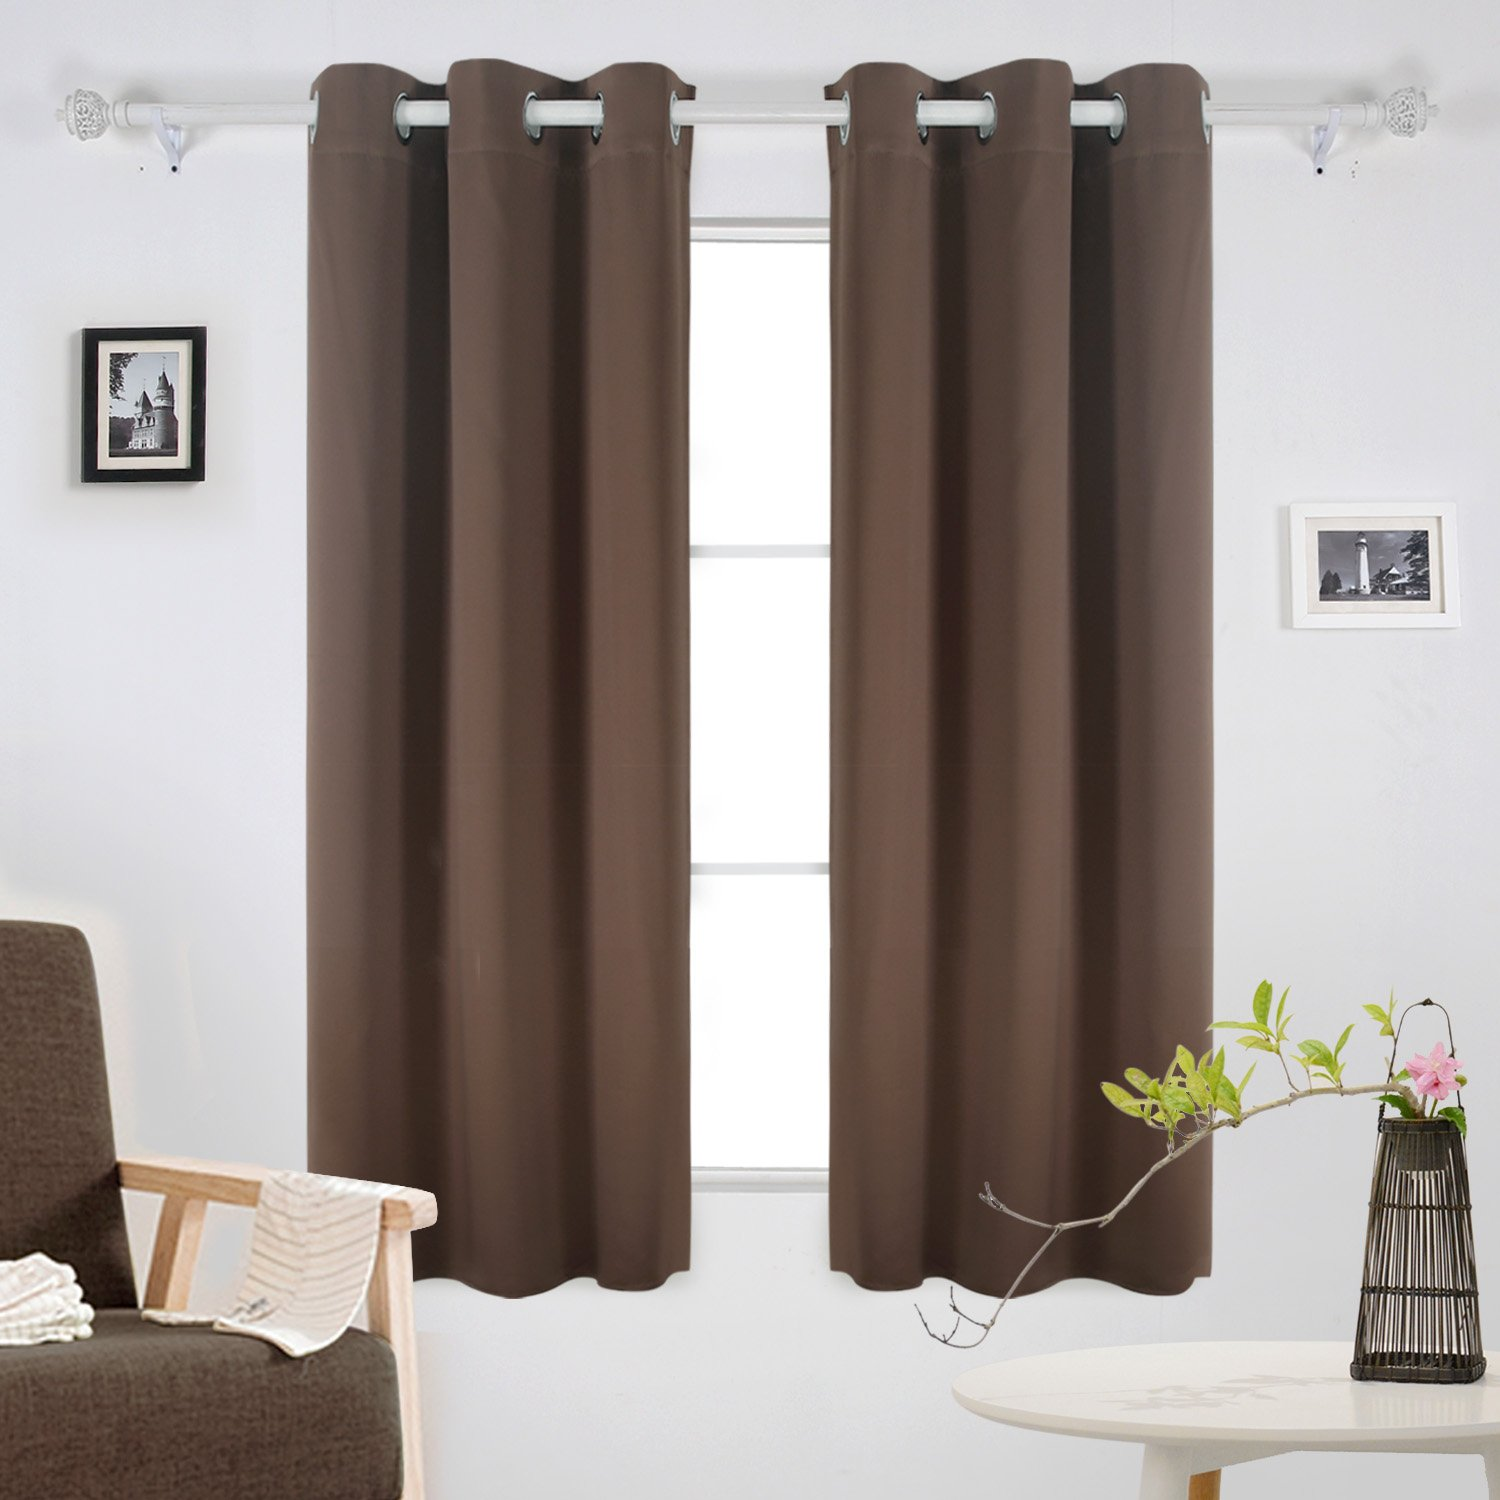 Deconovo Room Darkening Thermal Insulated Blackout Grommet Window Curtain Panel Sets of 2